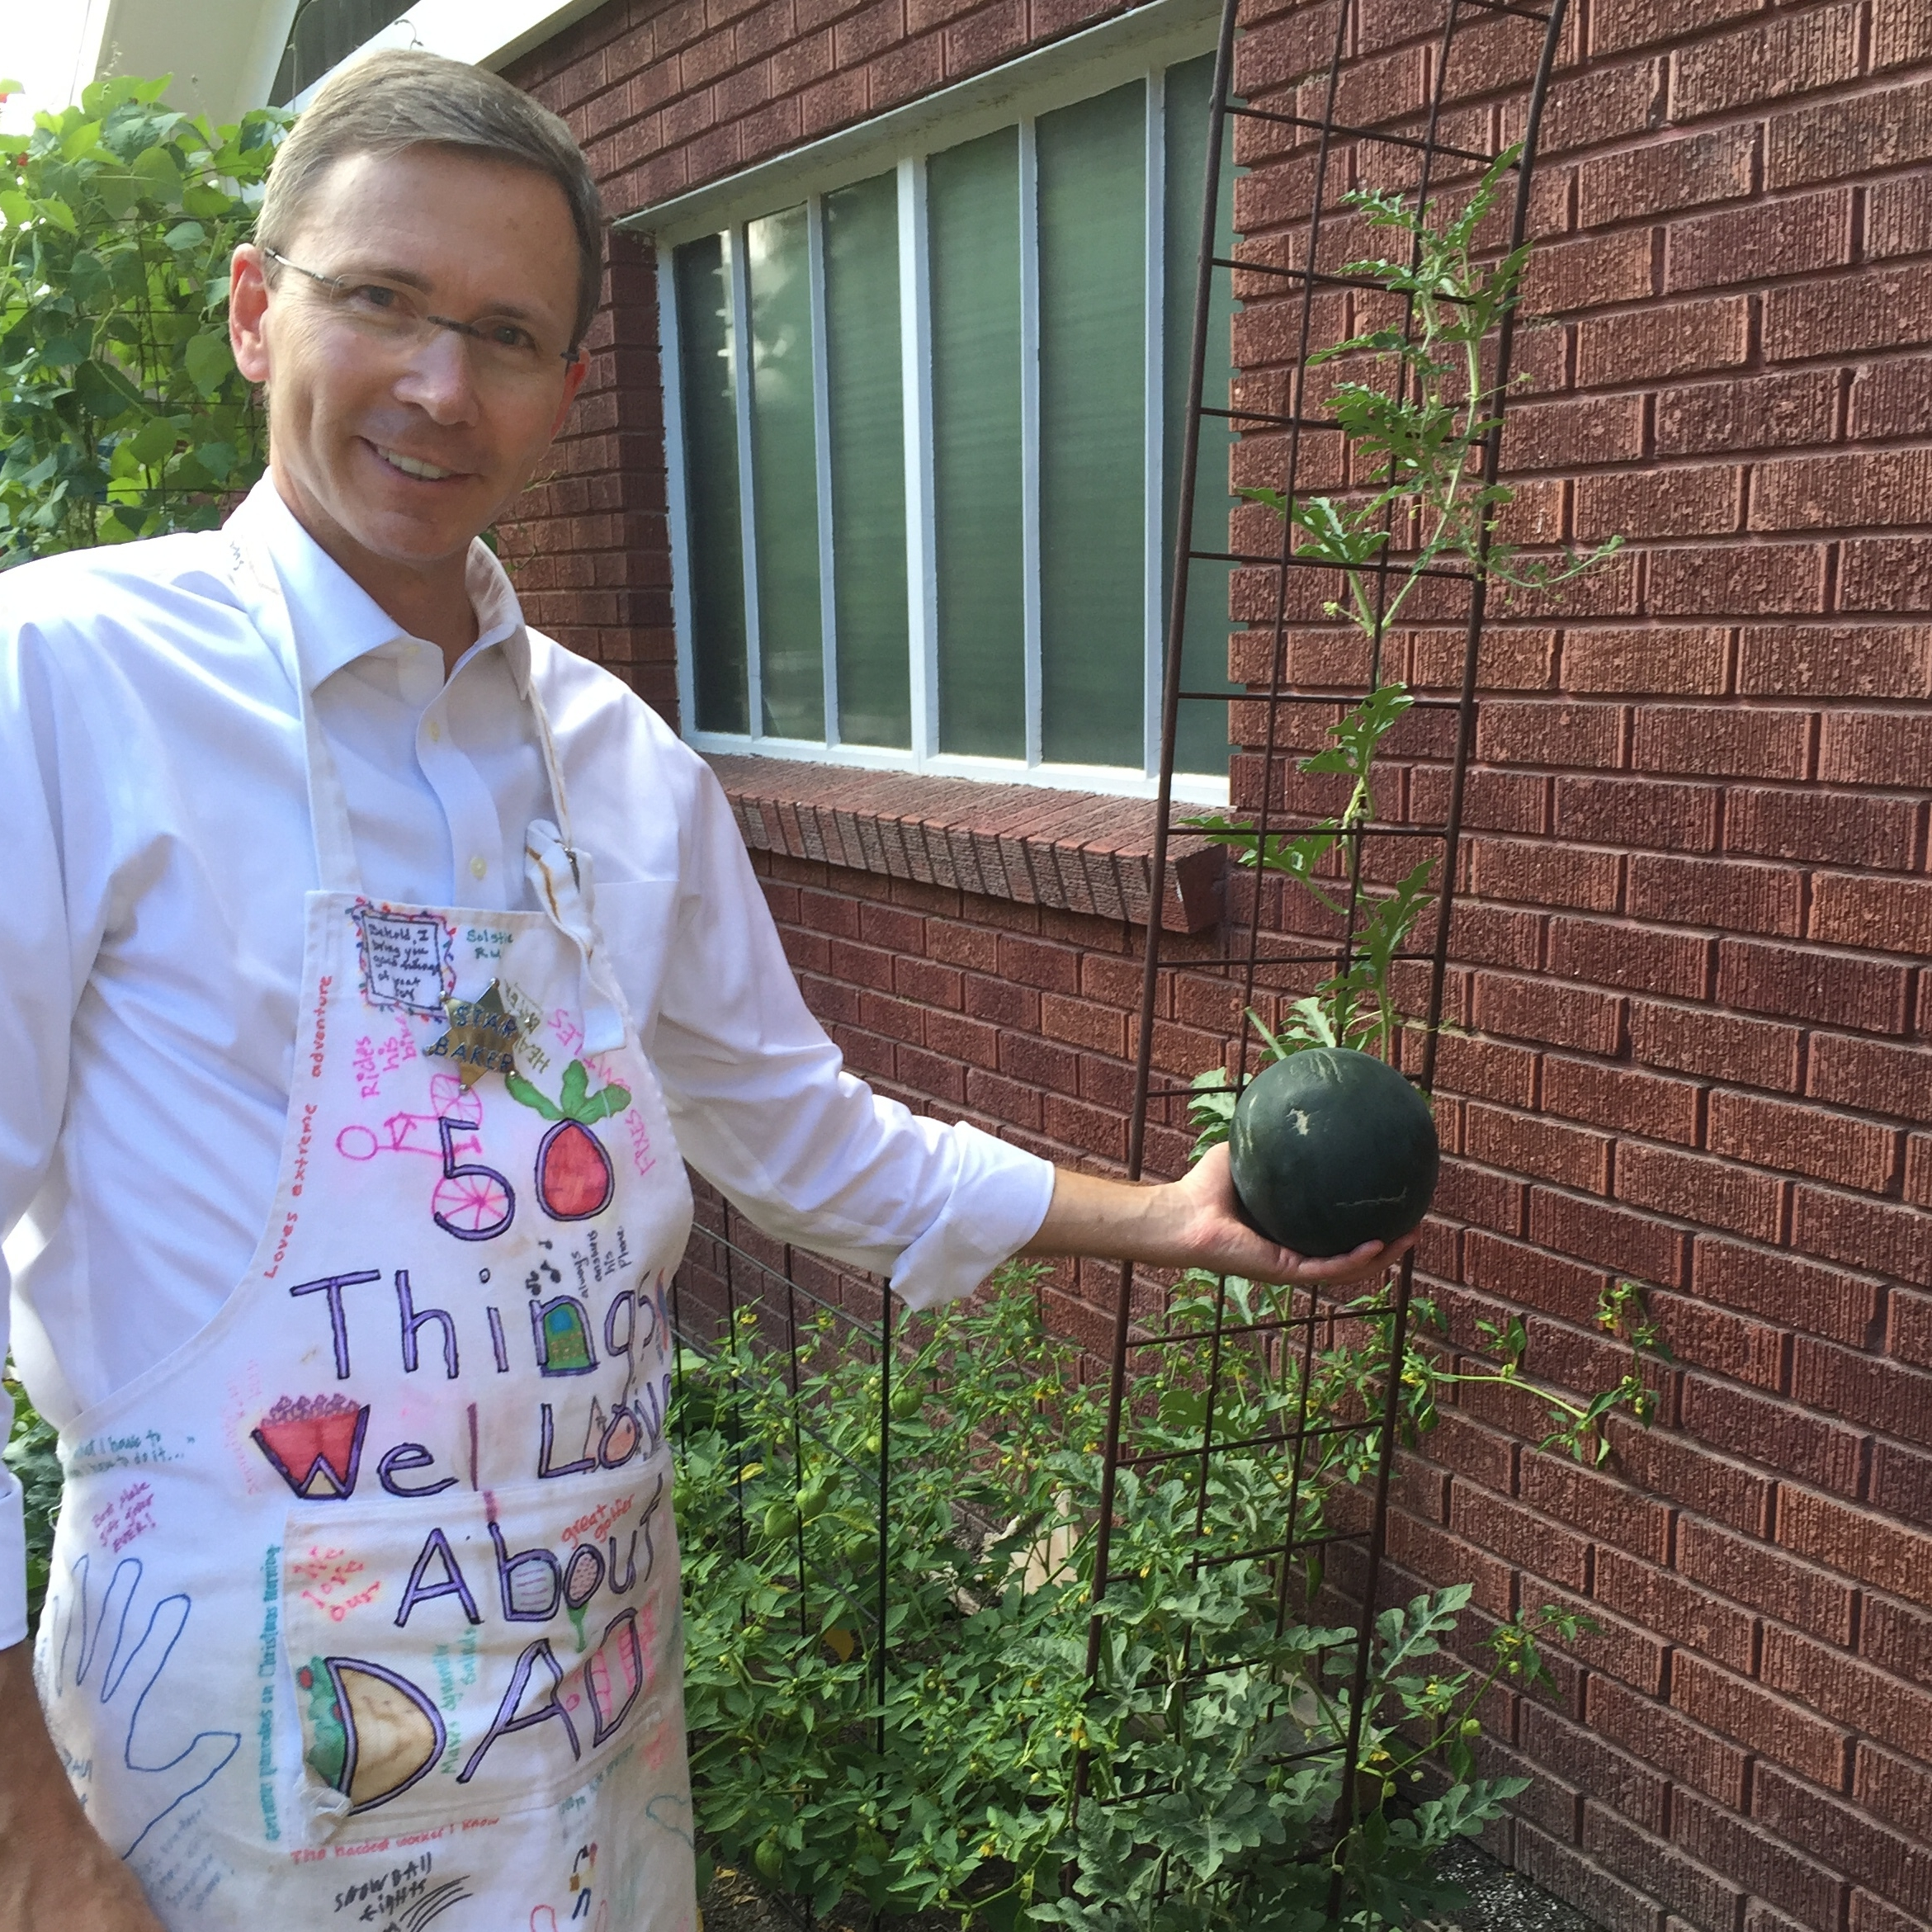 Backyard GardenShare - Become a Collection Point or Courier